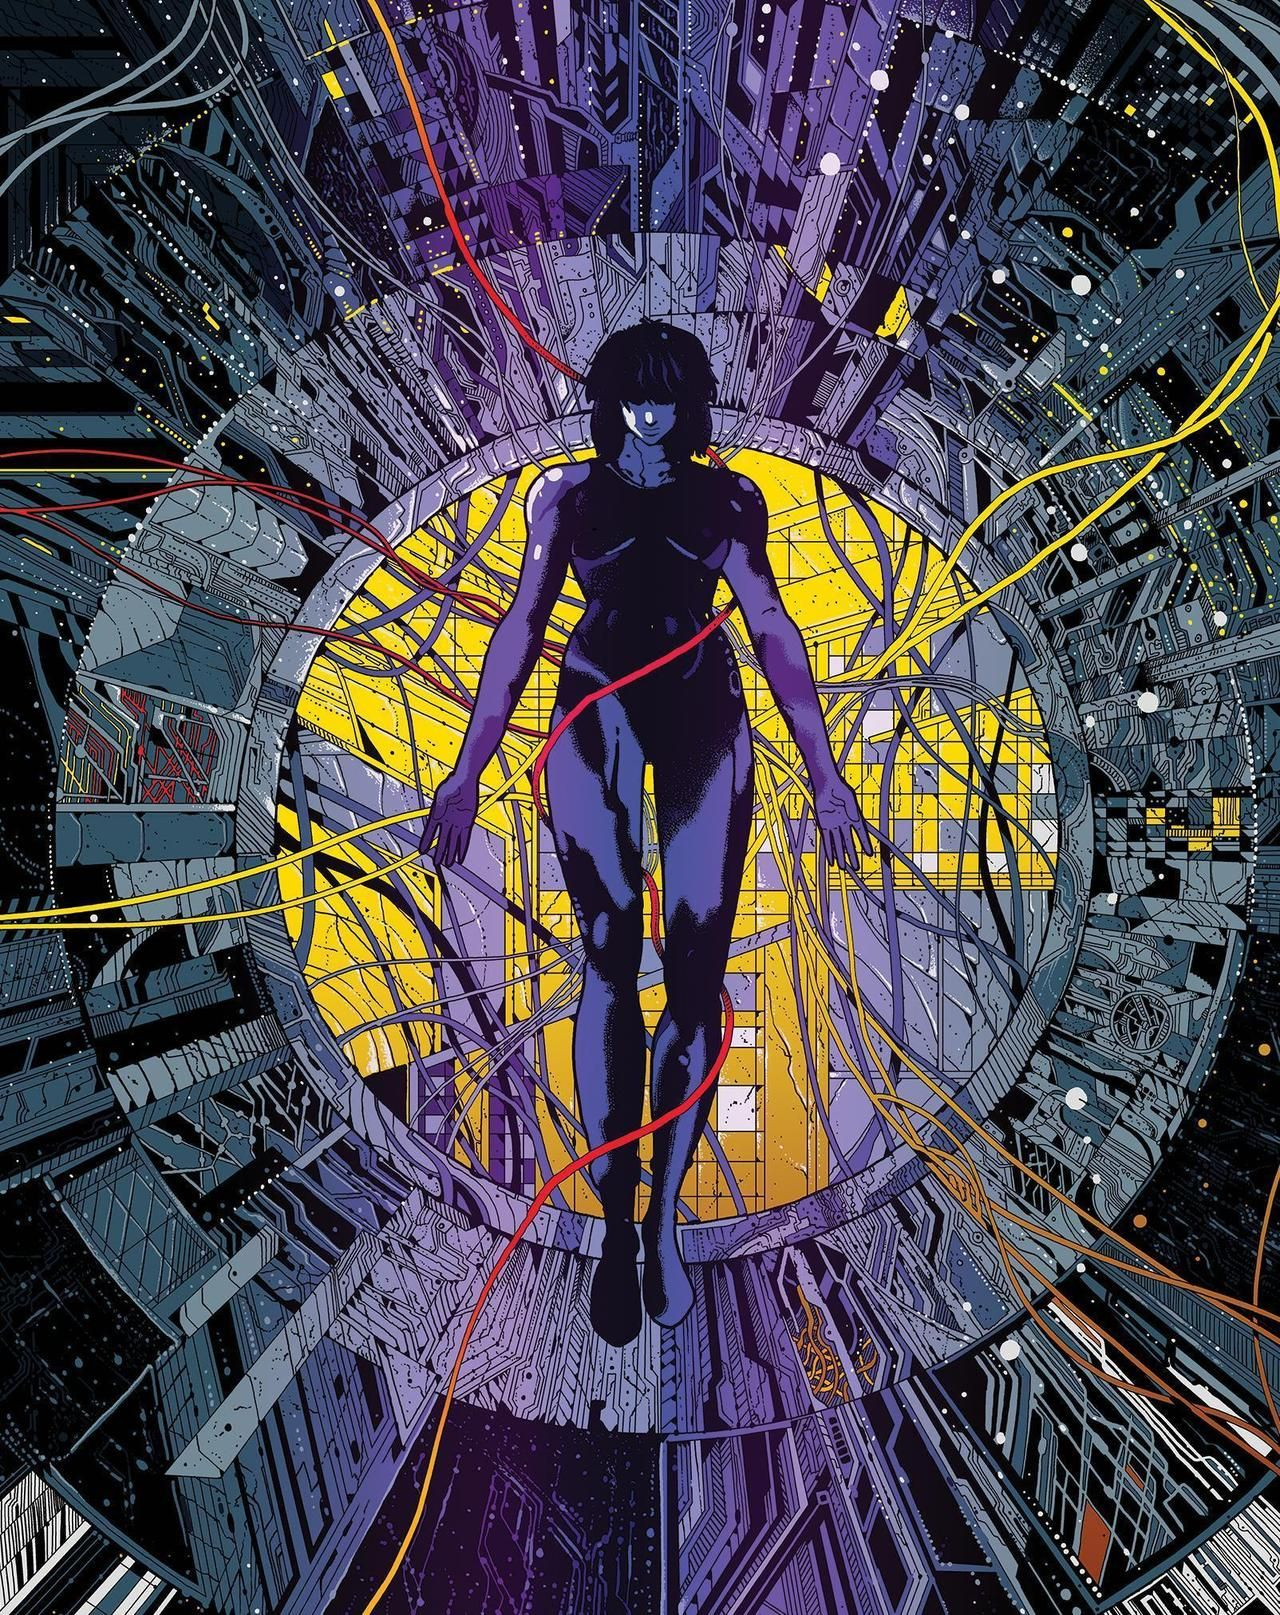 Image Result For Ghost In The Shell Original Art Ghost In The Shell Anime Ghost Shell Art